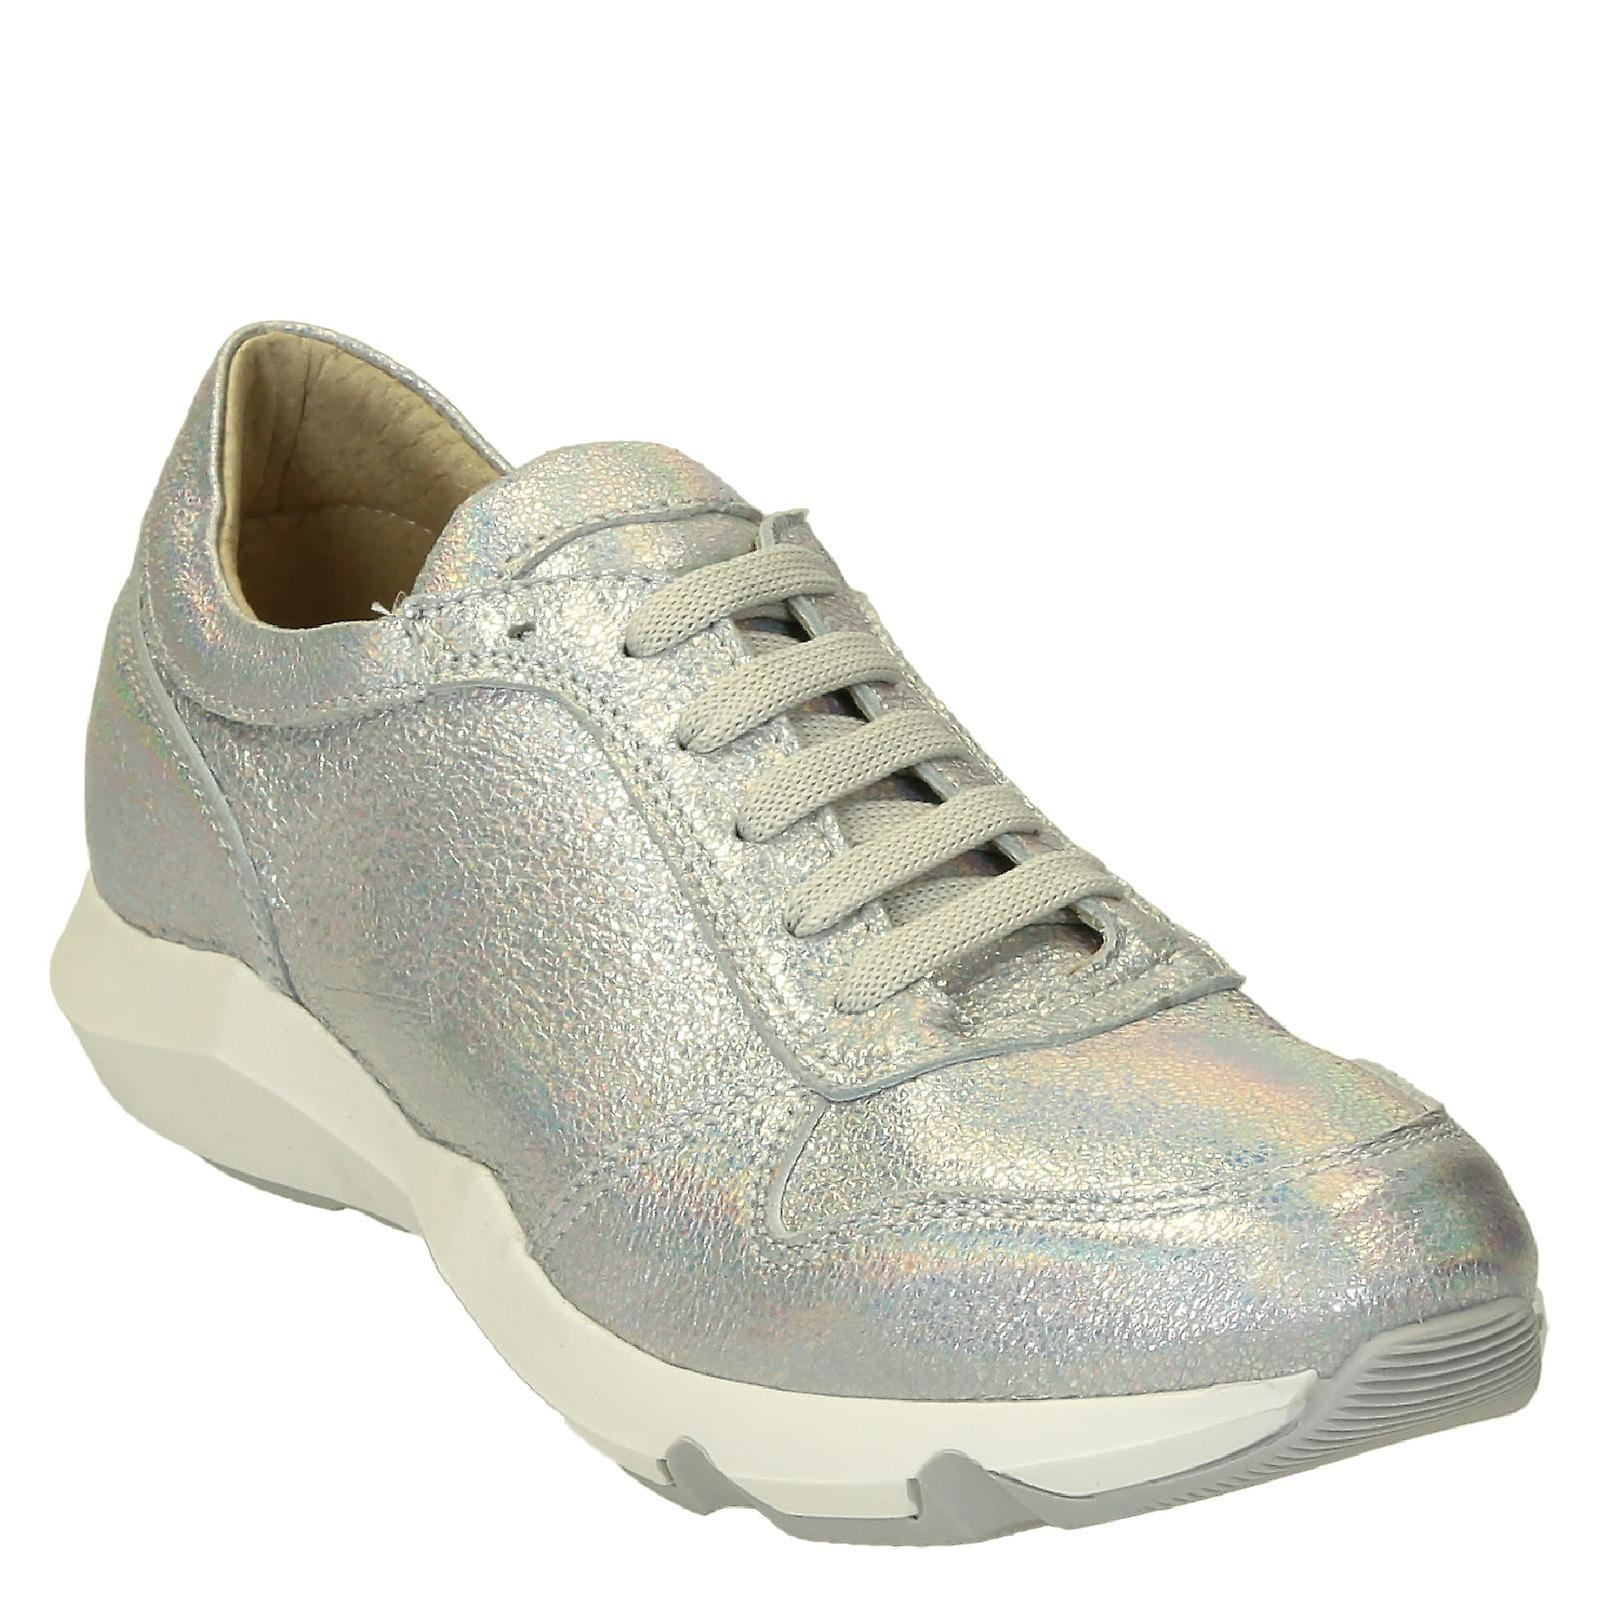 Silver glitter leather sneakers shoes handmade for women